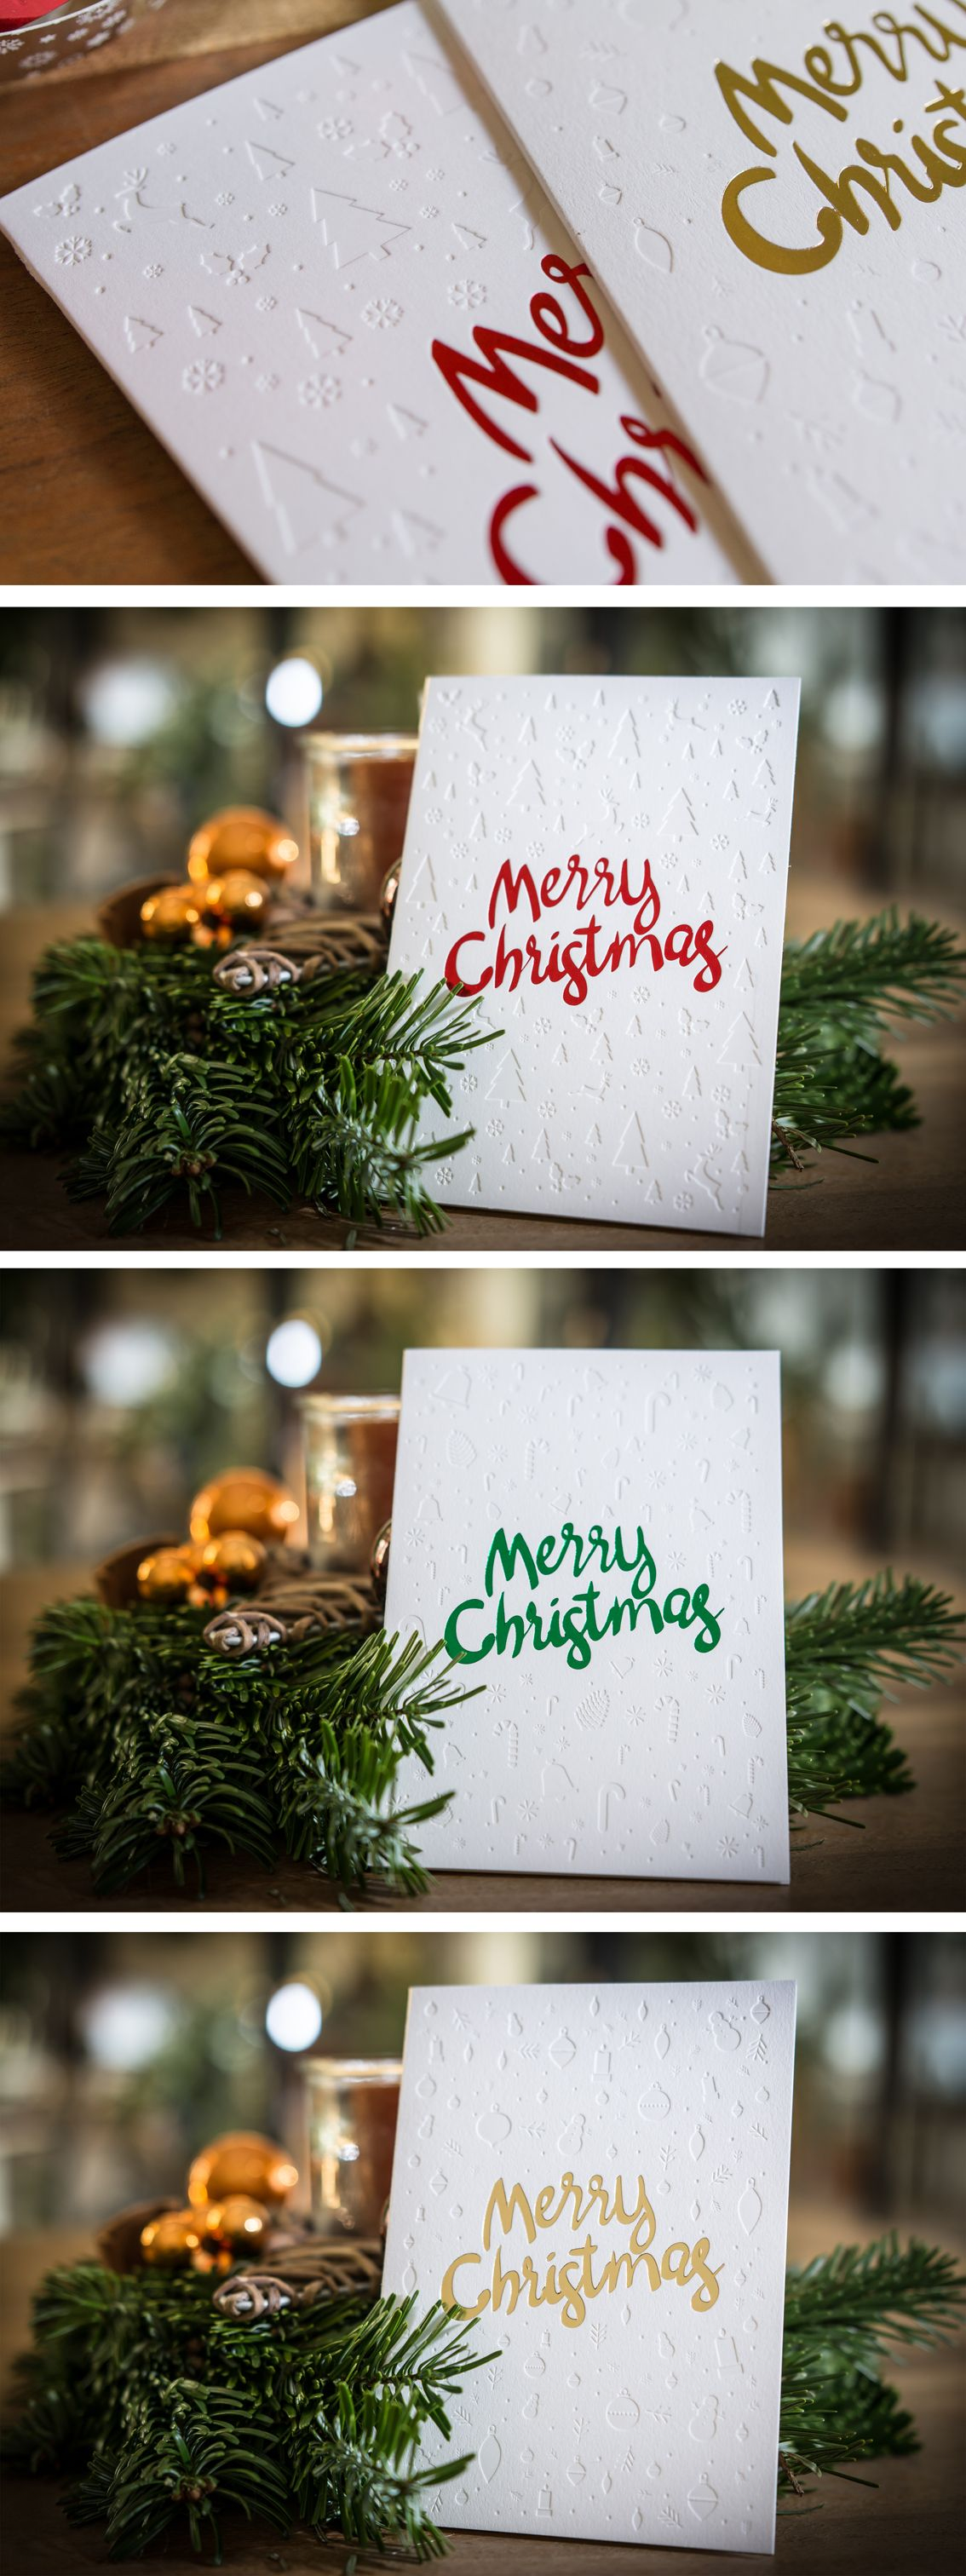 Letterpress Weihnachtskarten.Christmas Cards With Deep Impression And Hotfoilstamping In Gold